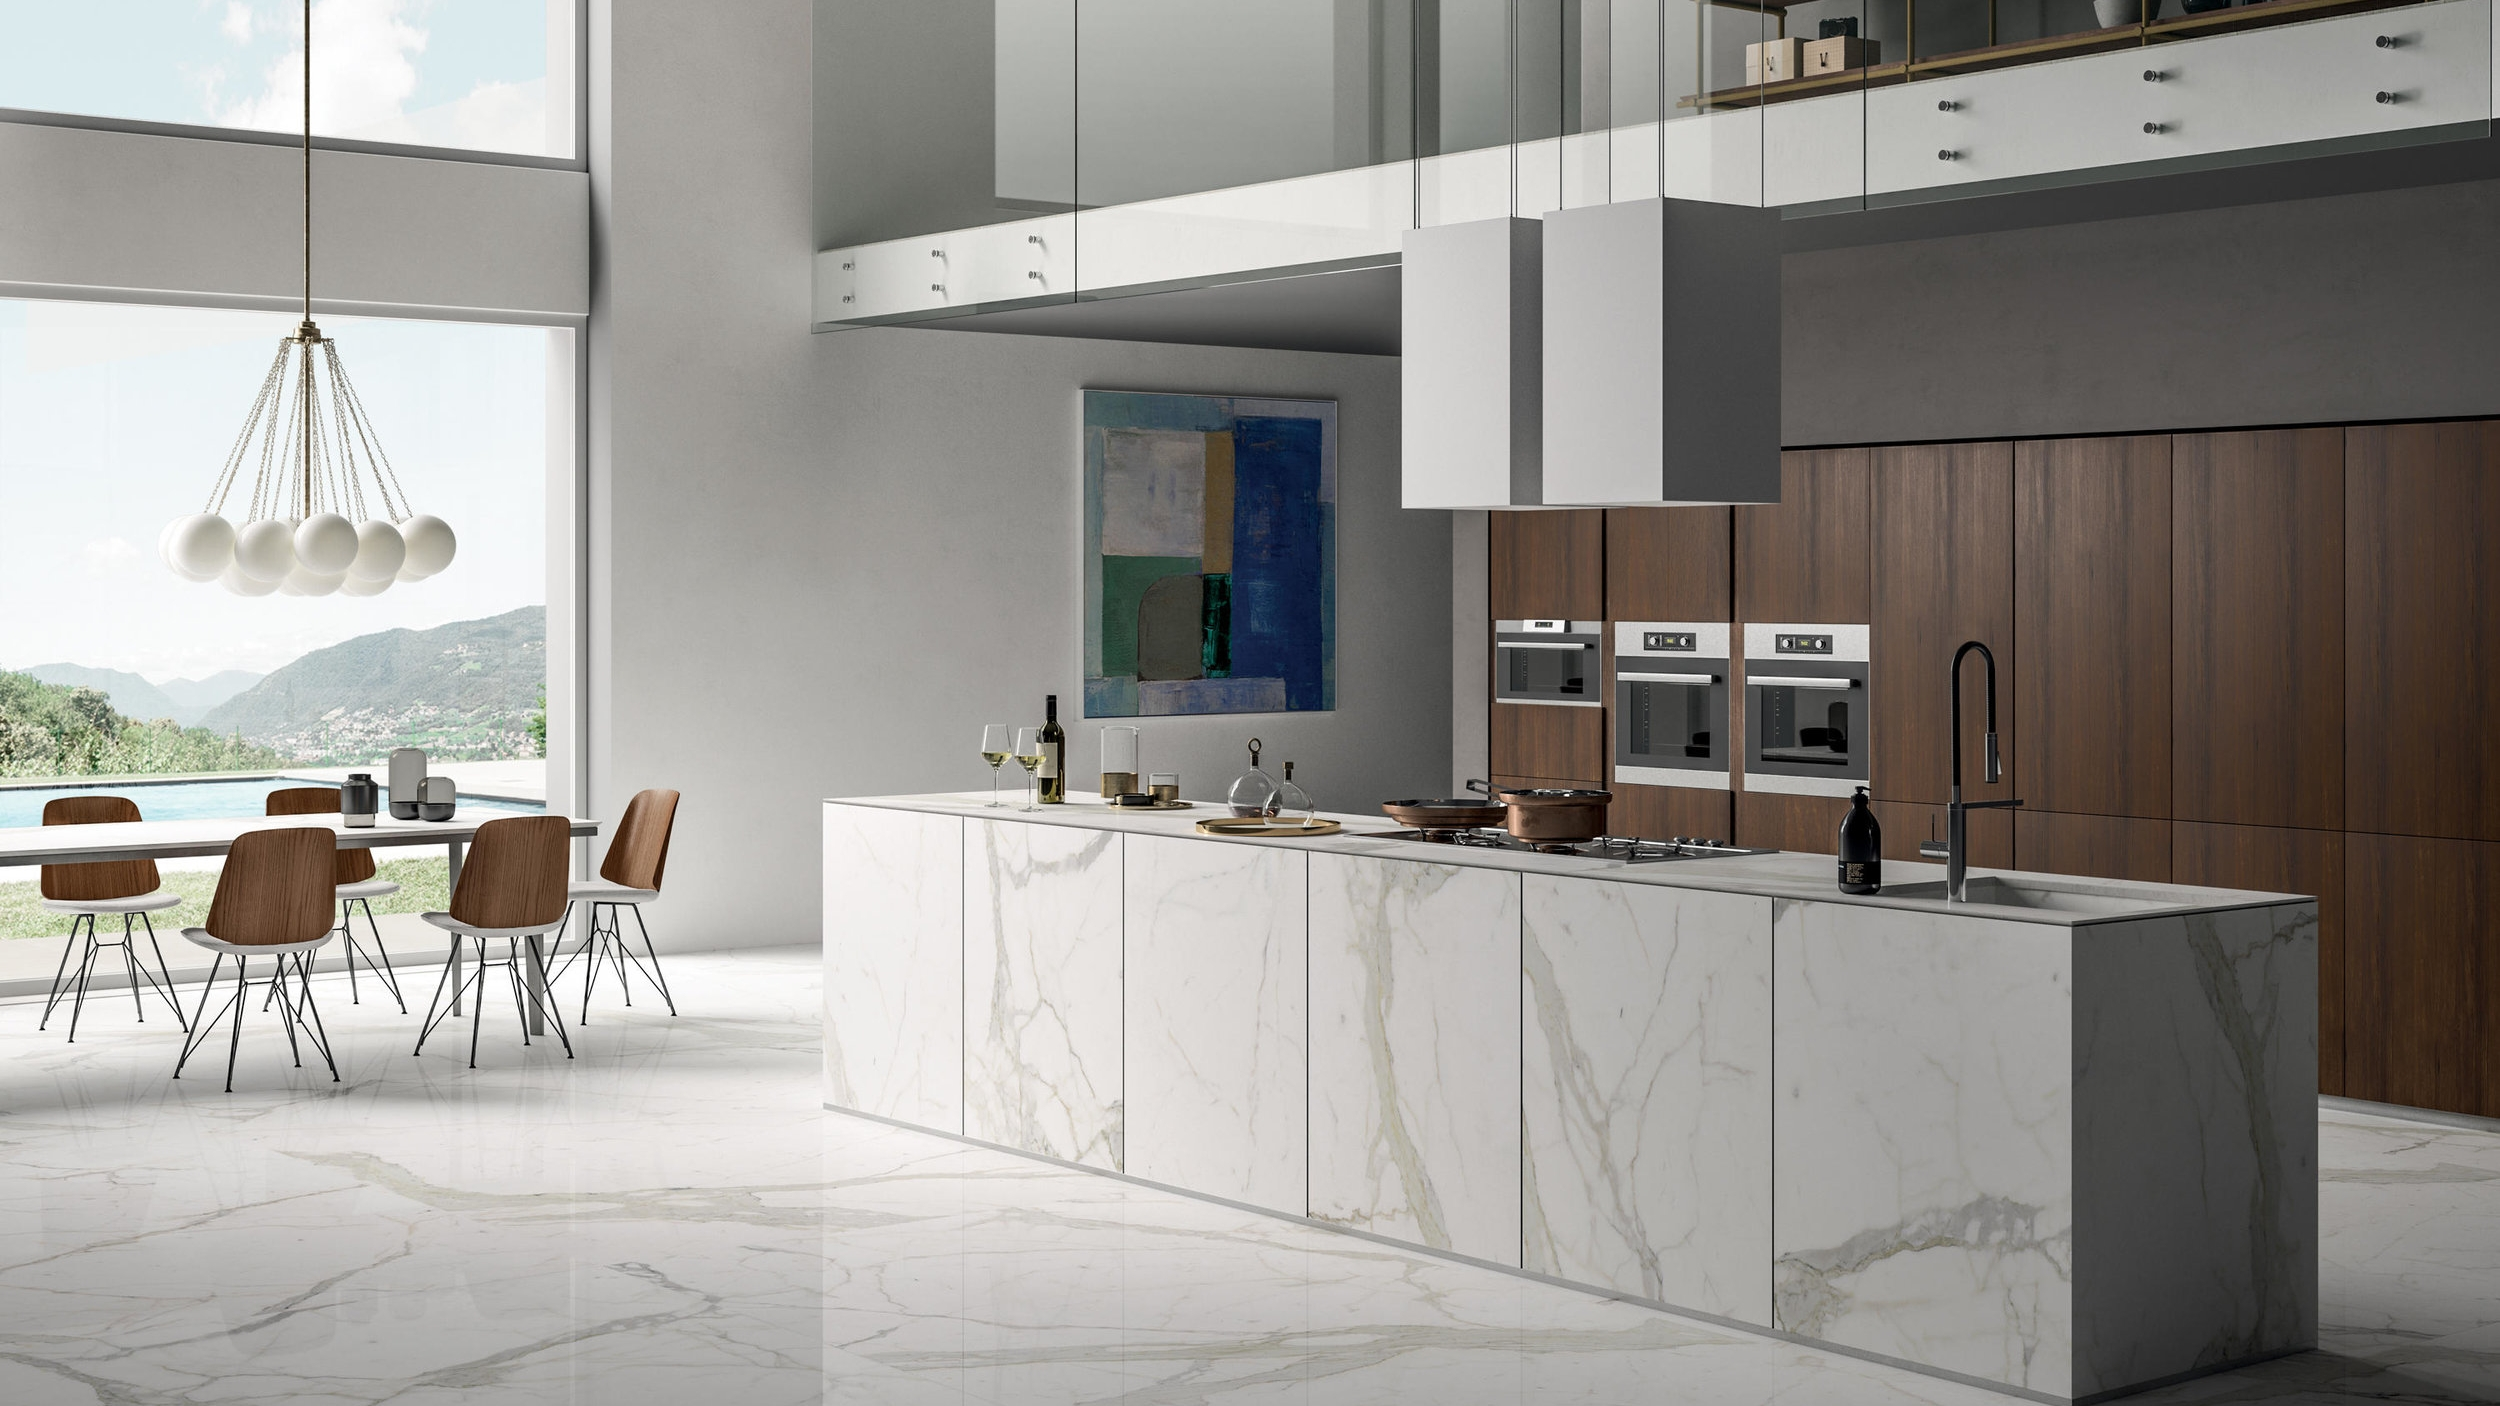 """SAPIENSTONE - IRIS technical ceramics goes into the kitchens of homes, bars, and restaurants with an unalterable, scratch-proof, easy to clean countertop. Presented in the """"Around the Top"""" European tour in 2017, SapienStone eliminates problems with hot dishes, chemicals, and scratches.< See More"""